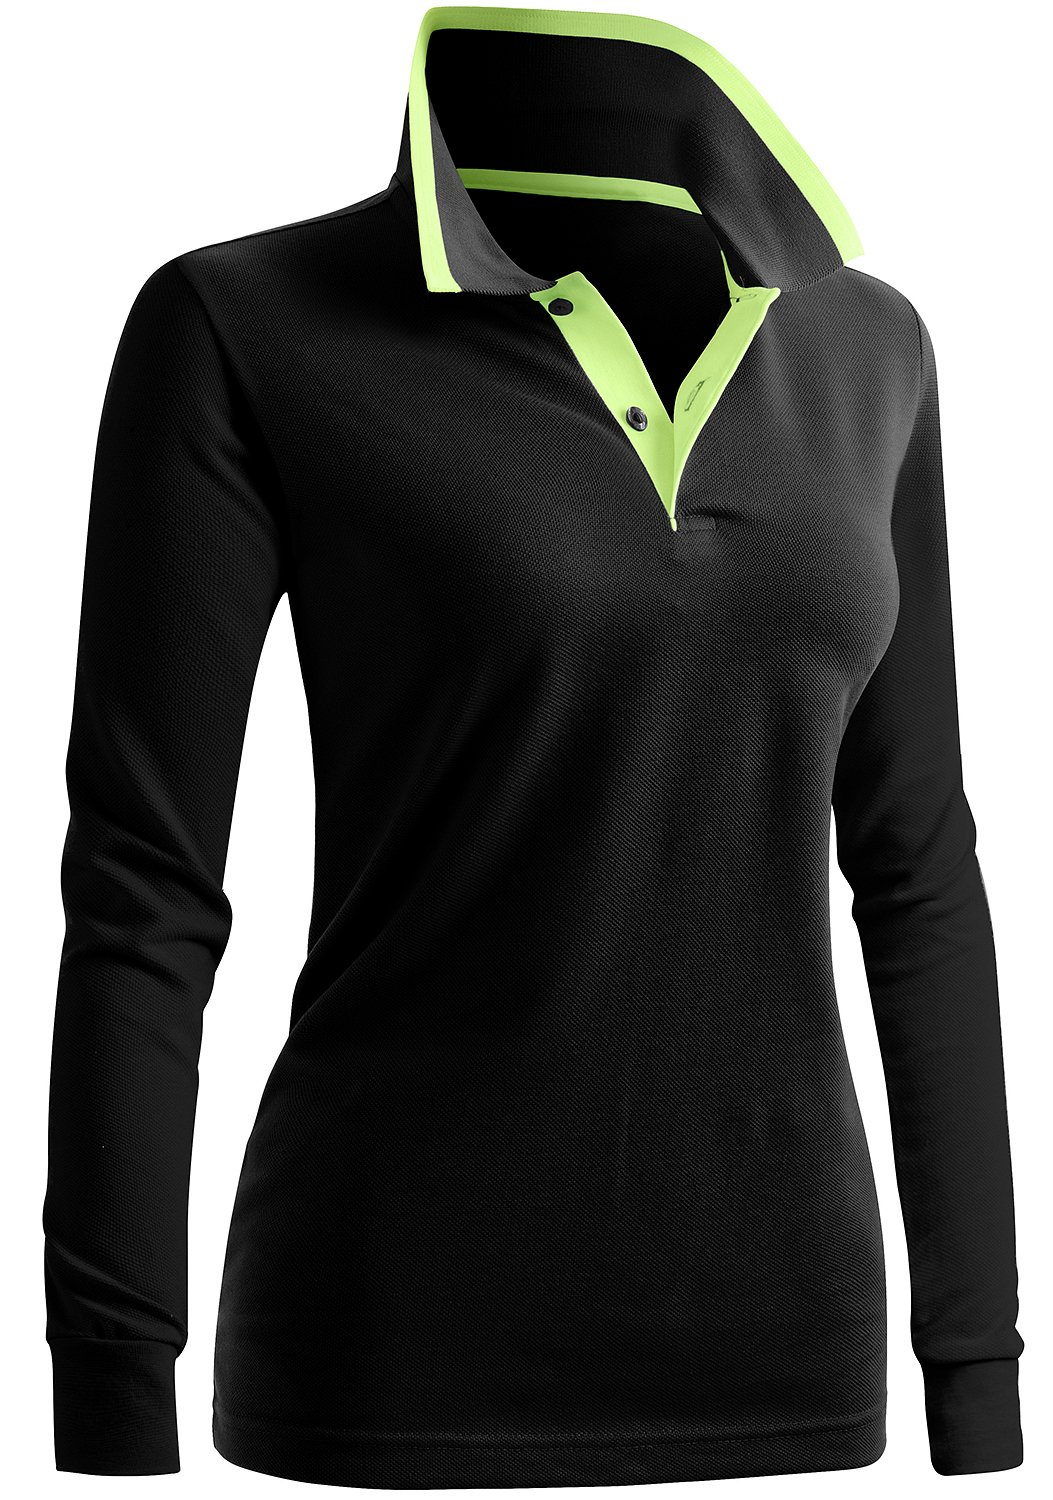 CLOVERY Women's Classic Fit Long Sleeve Basic Polo Shirts Black US L/Tag L